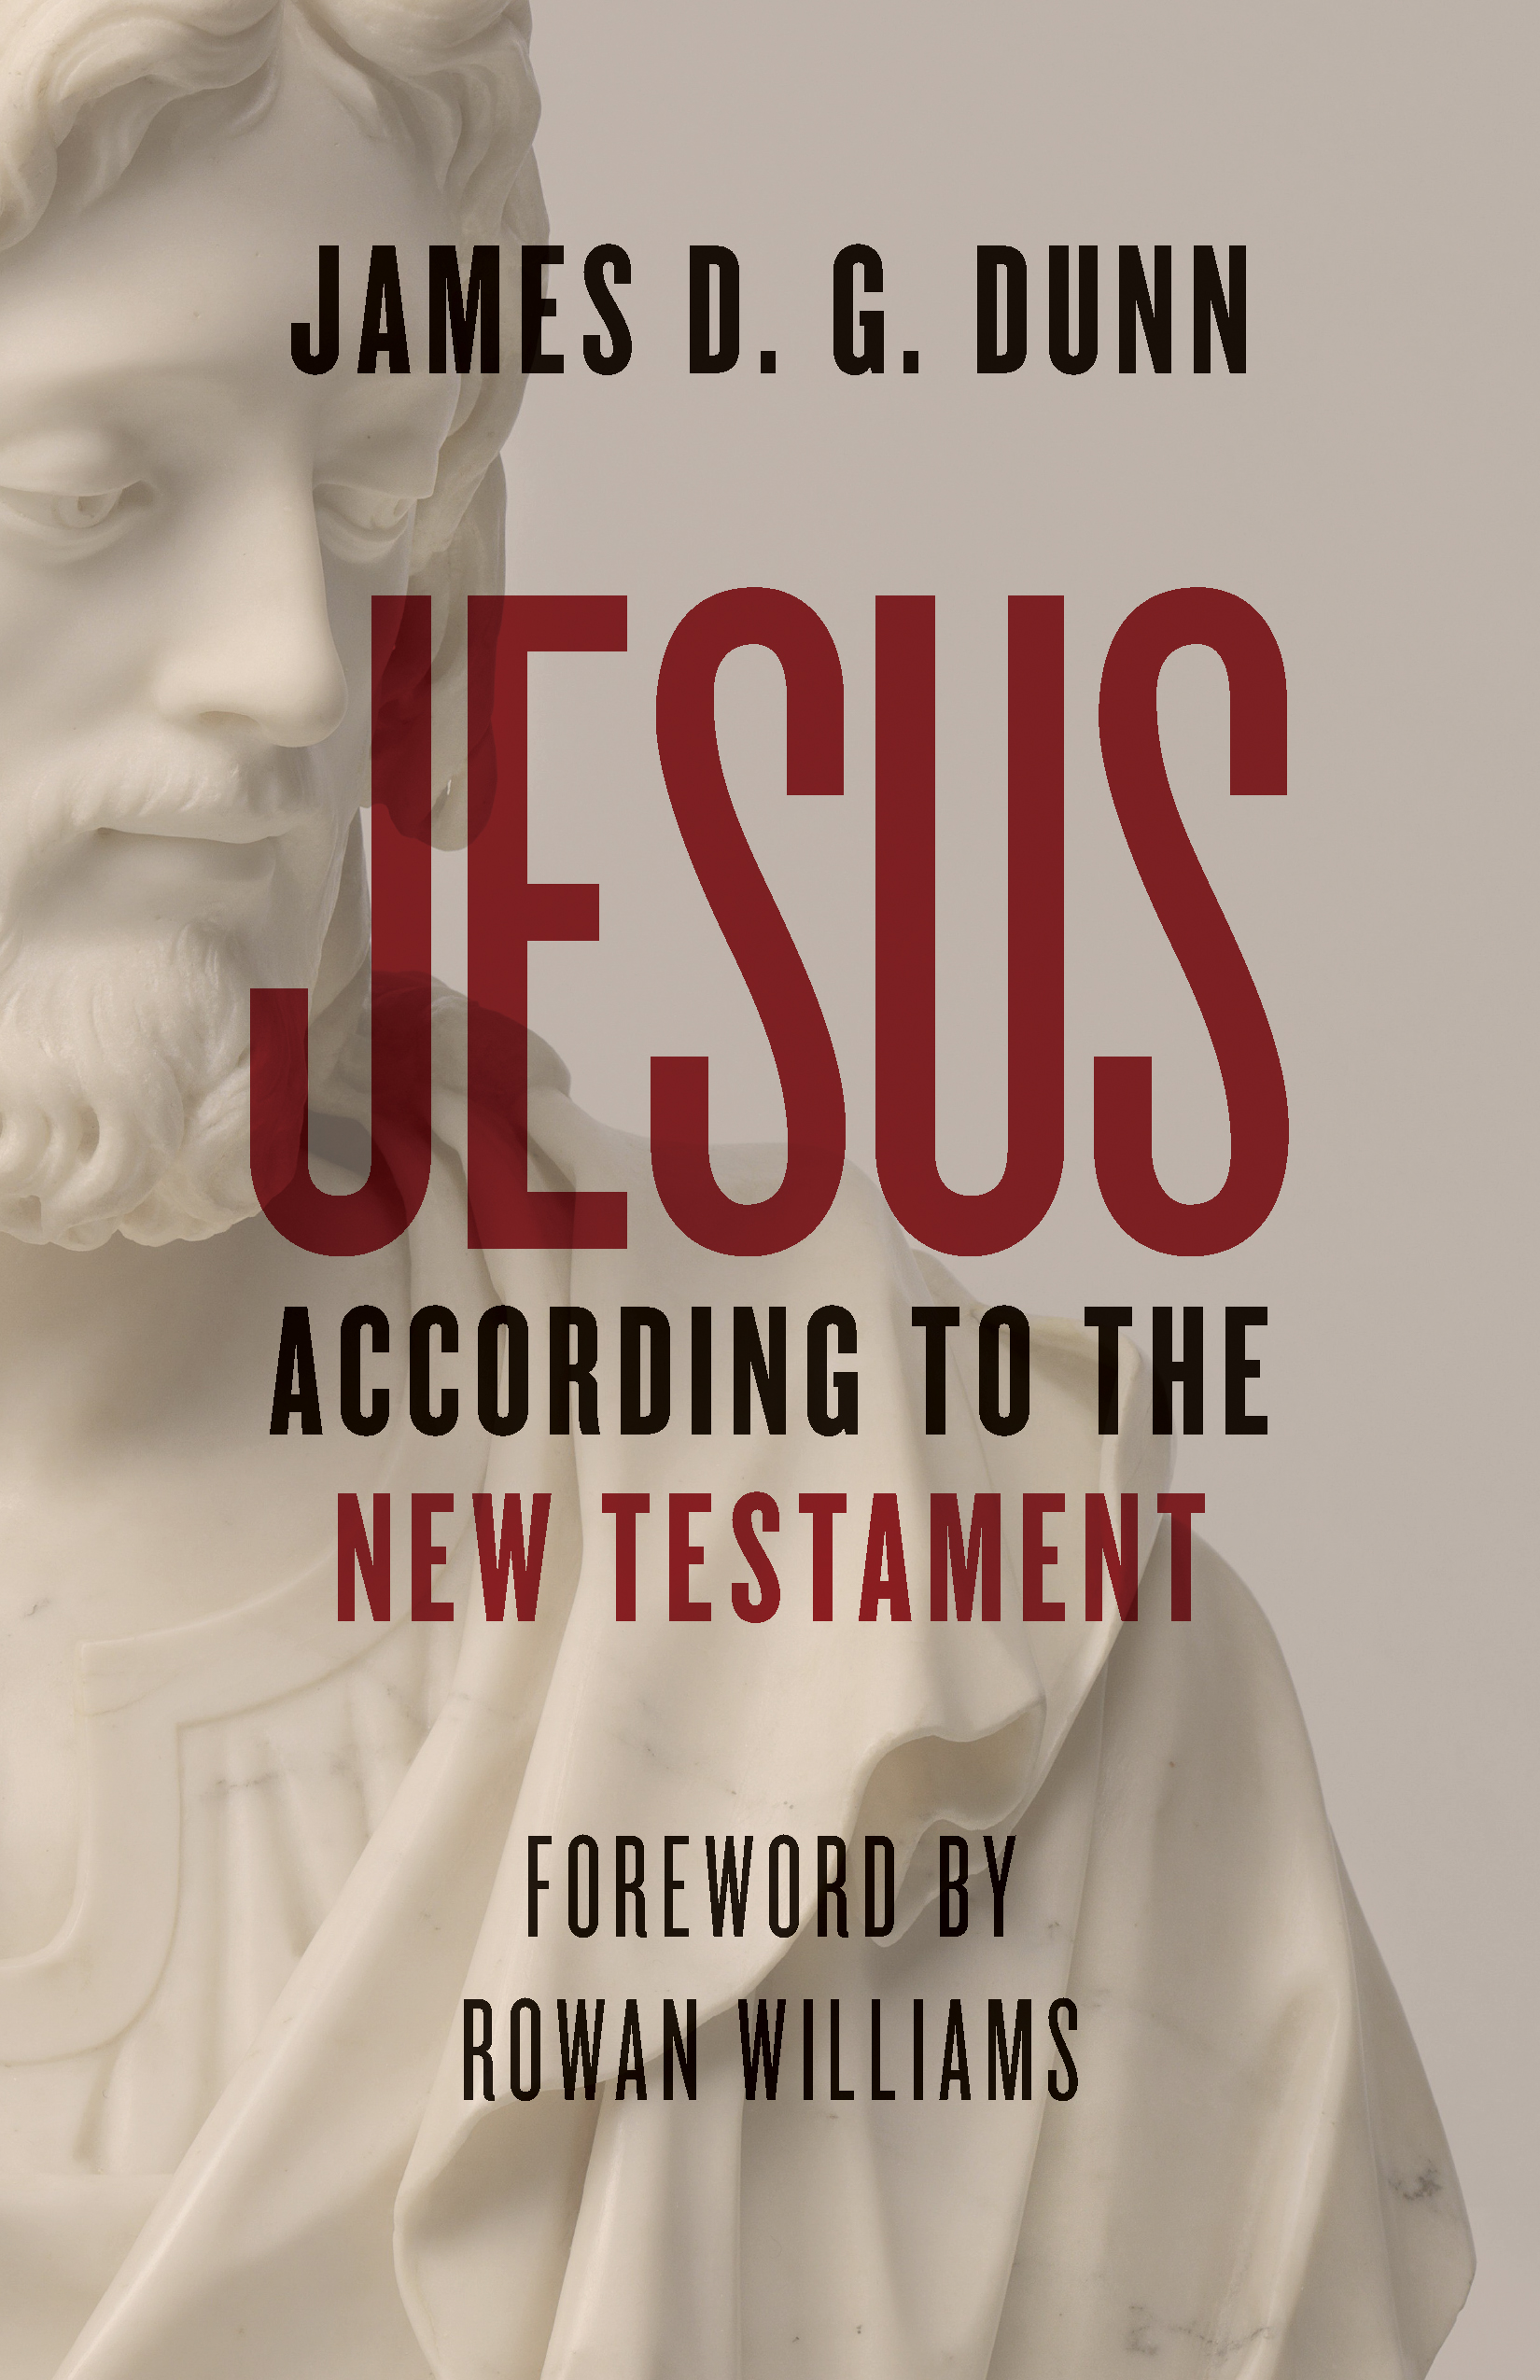 Book Review: James D. G. Dunn, Jesus according to the New Testament